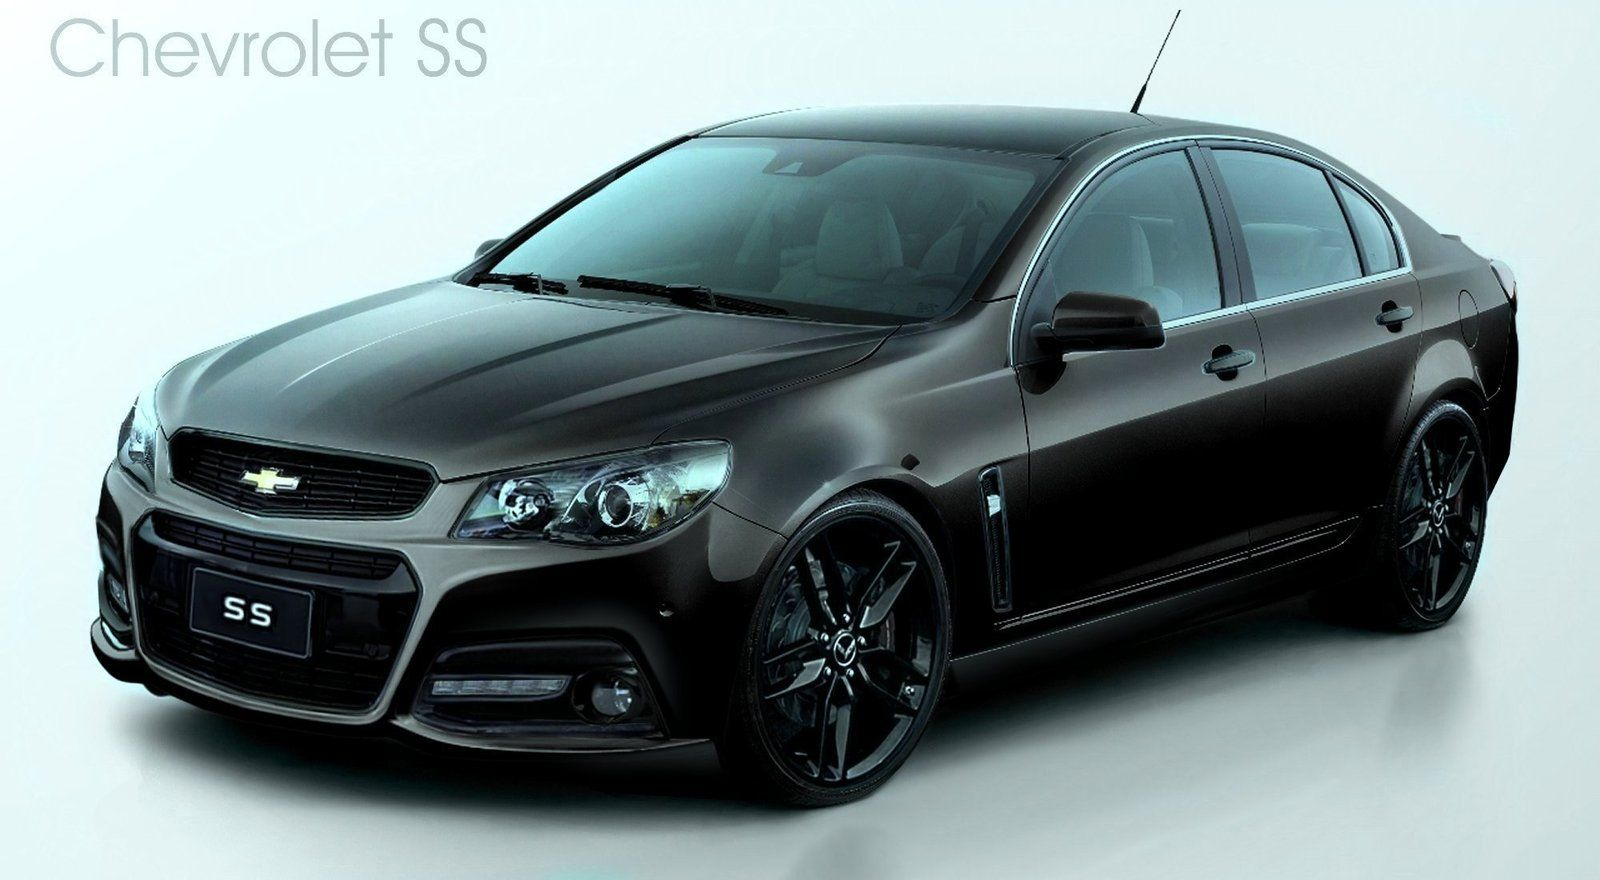 2014 chevy ss pictures 2014 chevrolet ss performance sedan with racing dna page